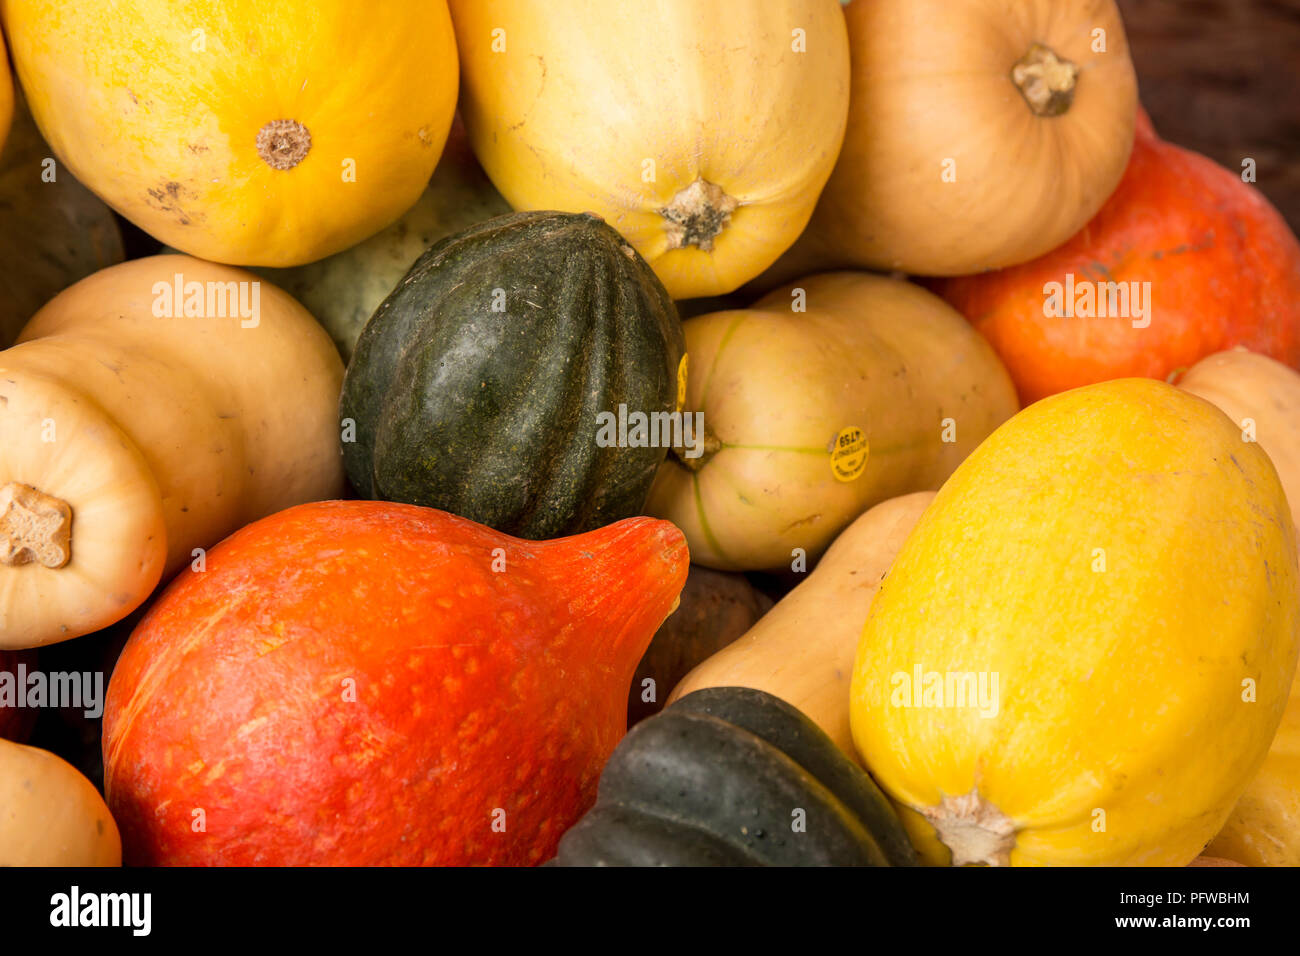 Hood River, Oregon, USA.  Variety of winter squash, including Acorn, Butternut, Kuri and Spagetti or Vegetable Squash. Stock Photo